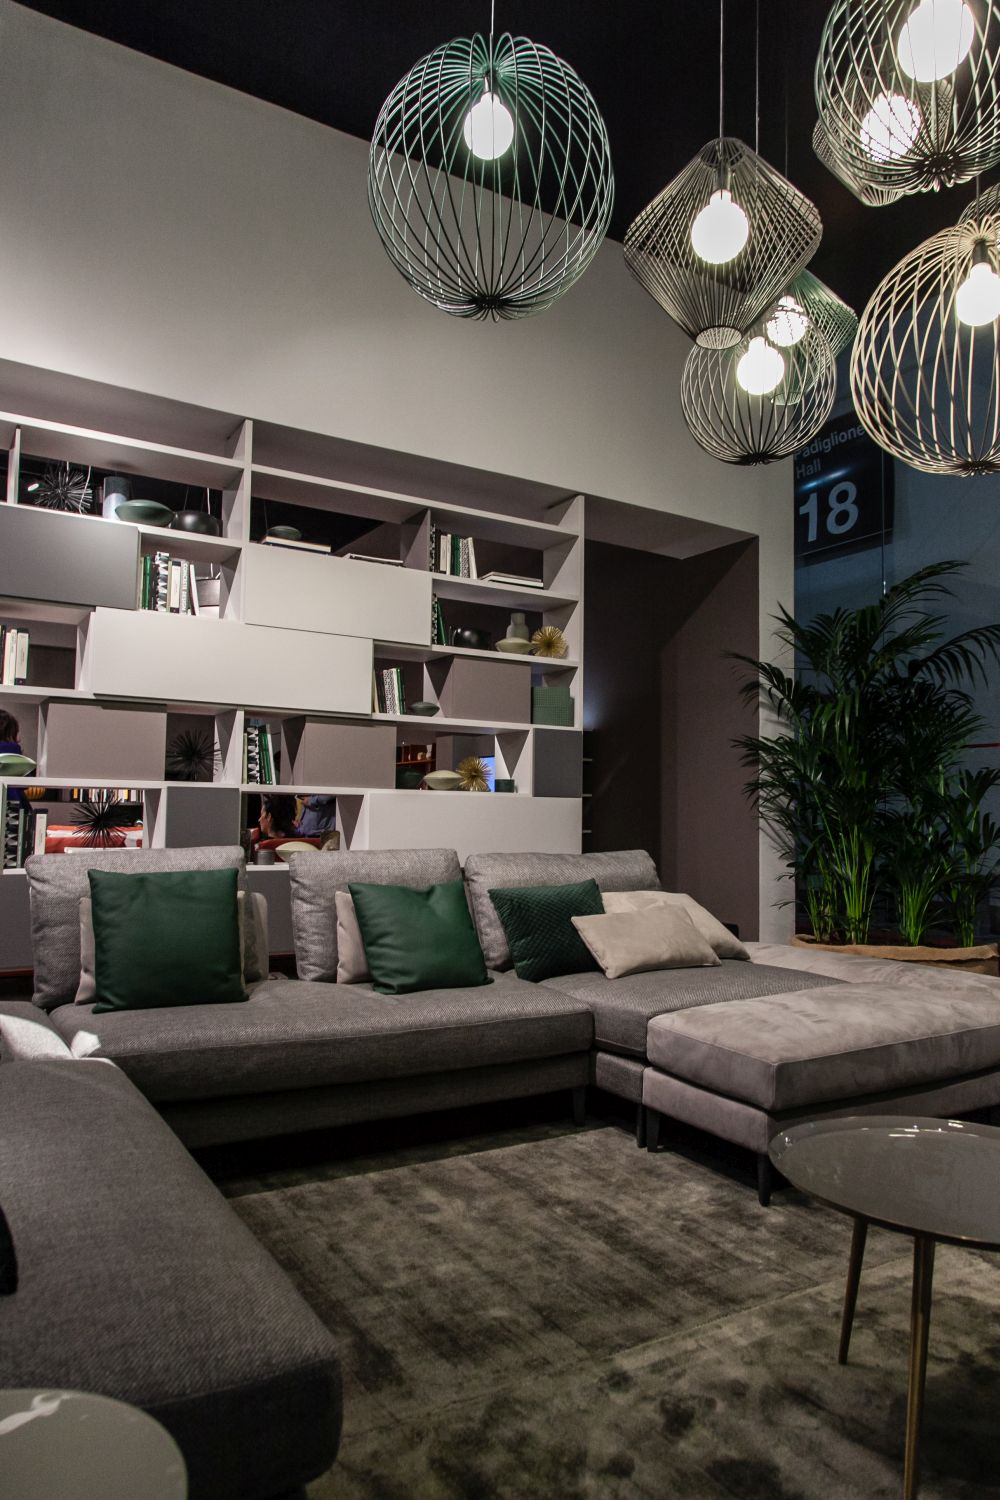 Custom bookcases can be designed to perfectly fit in a designated space and to complement it just right